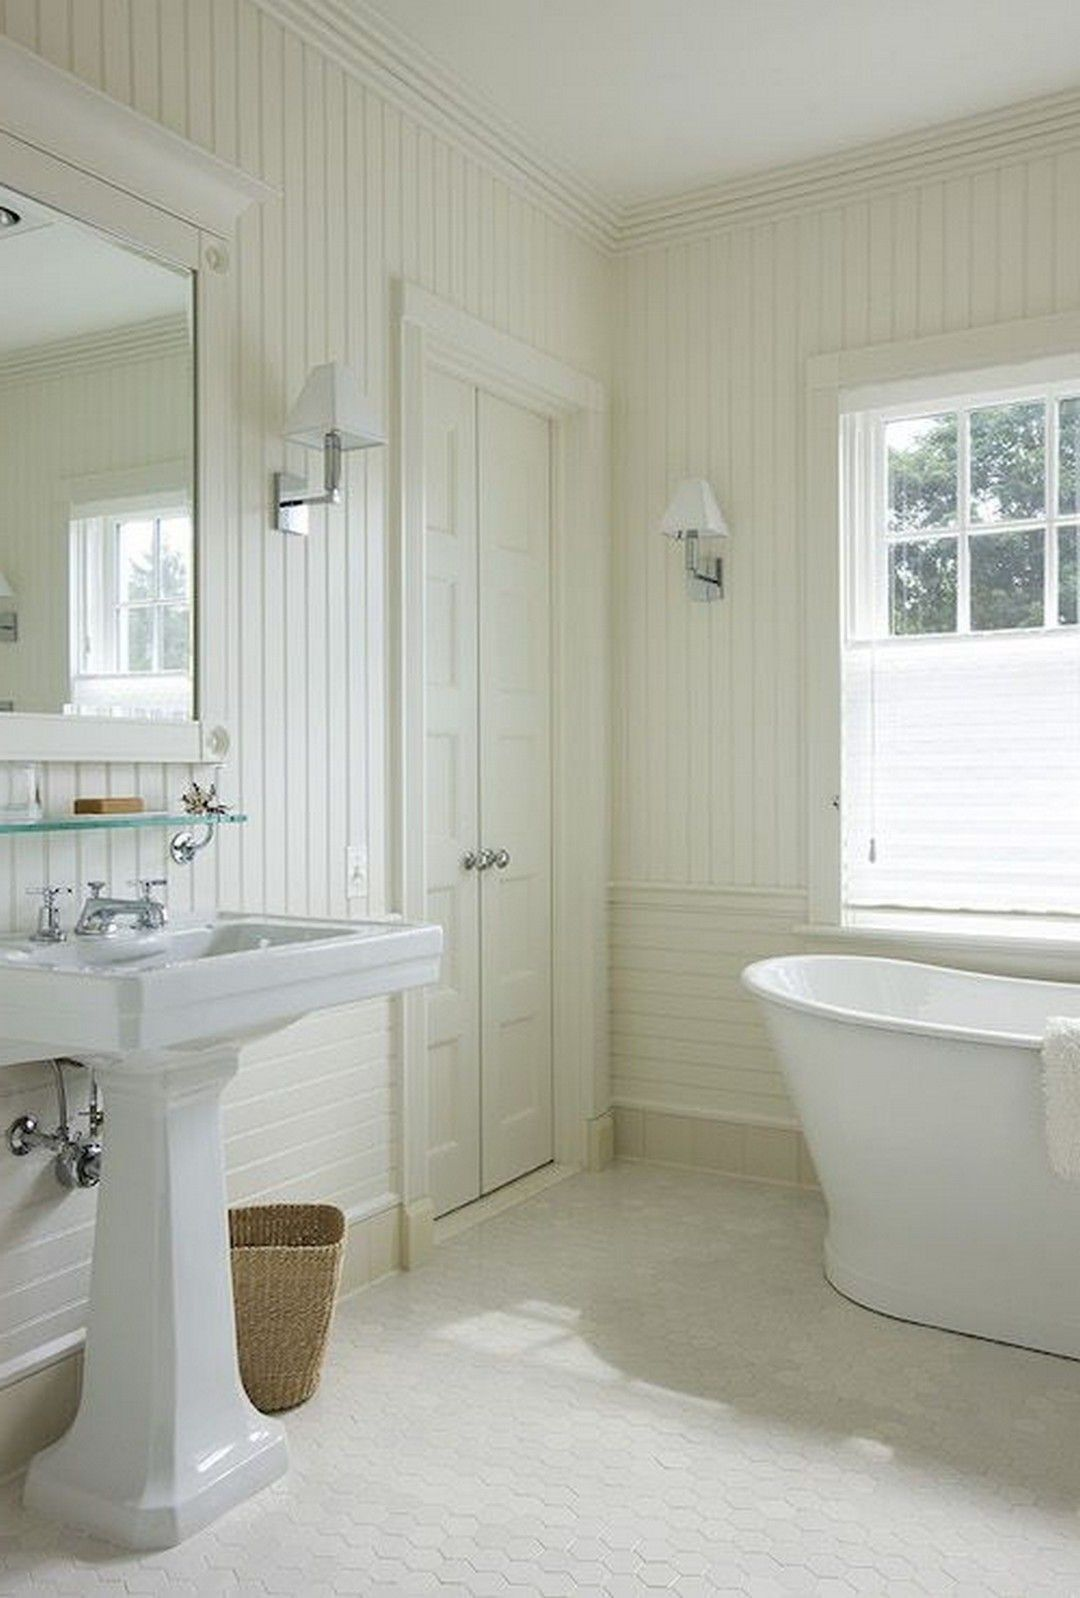 30 Most Por Small Bathroom Remodel On A Budget Tags Decorating Ideas Simple Designs Photo Gallery